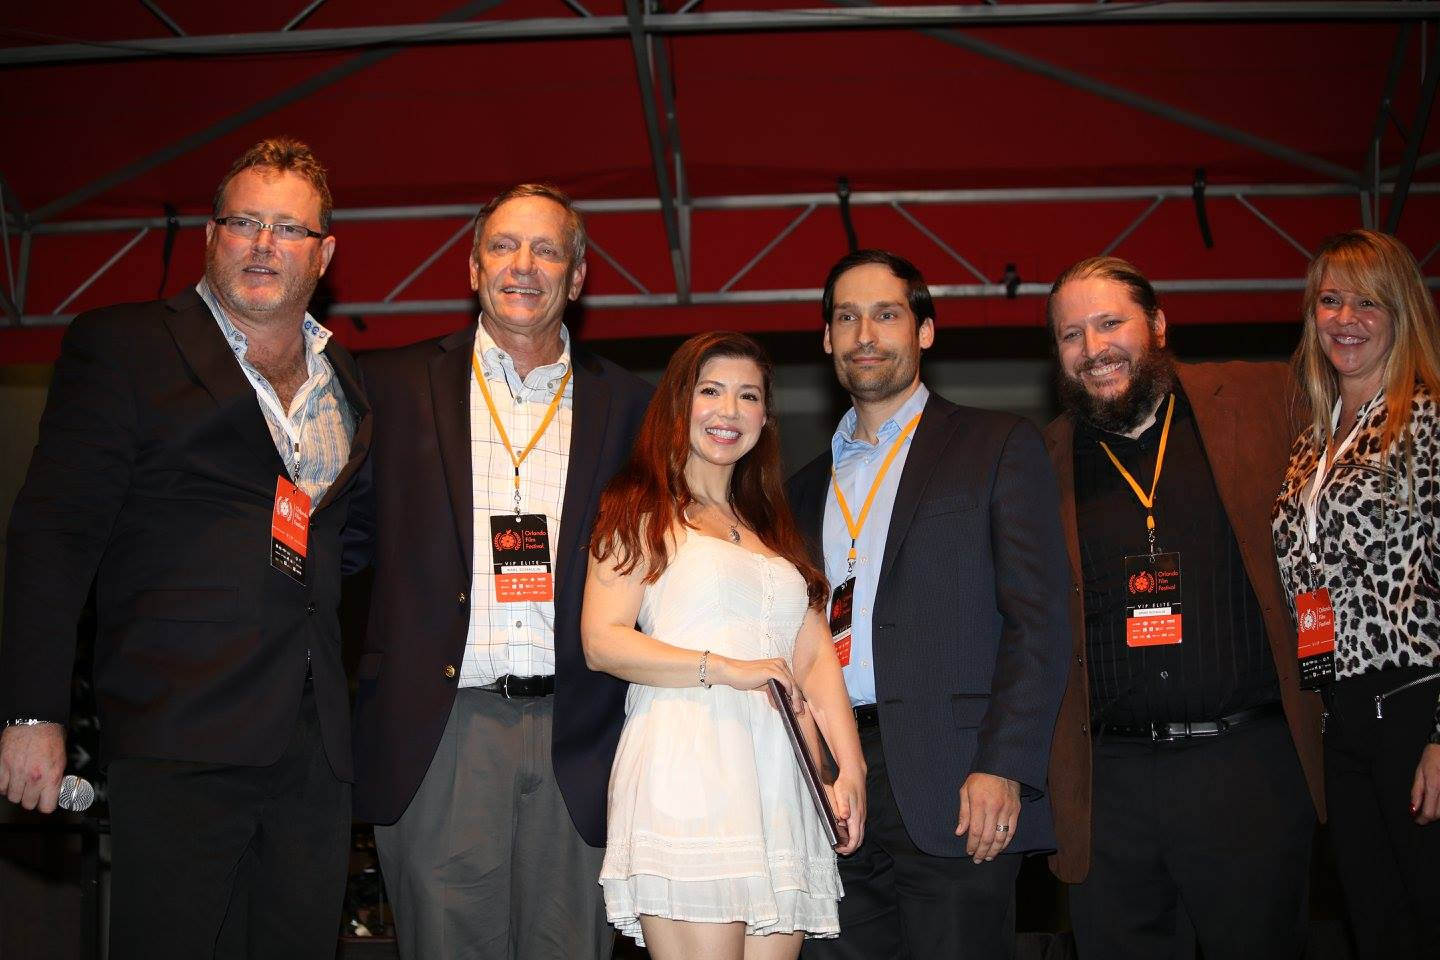 """Orlando Film Festival Executive Director Dan Springen (left) and Senior Vice President Holley Morgan (right) present producer Karl Schaulin, lead actress Michelle Martin, director Charles Huddleston, and cinematographer Kraig Schaulin receive the Best Picture award for """"Blue"""" at the OFFX Award Ceremony Saturday. Photo: J. Willie David III/Florida National News."""